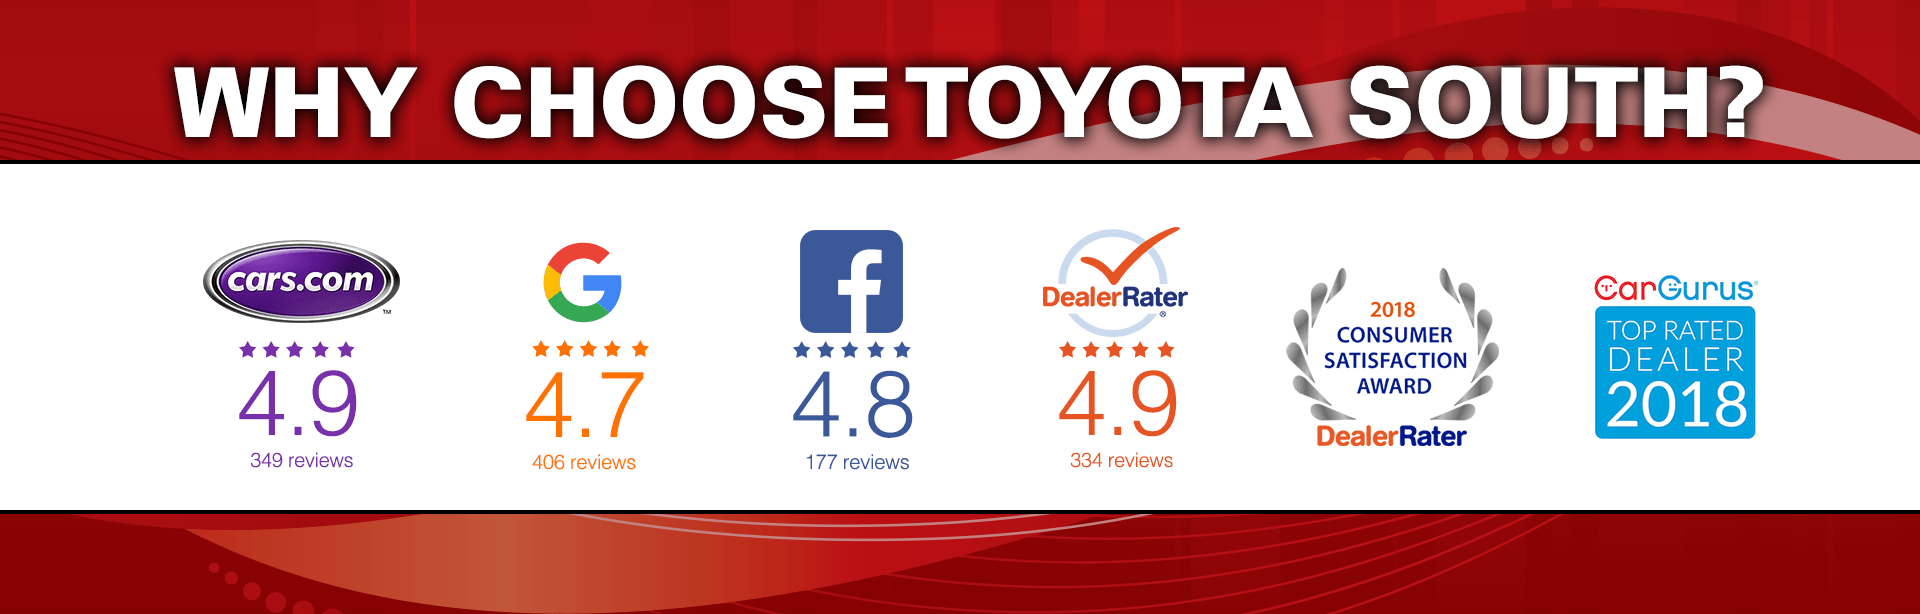 Why Choose Toyota South?